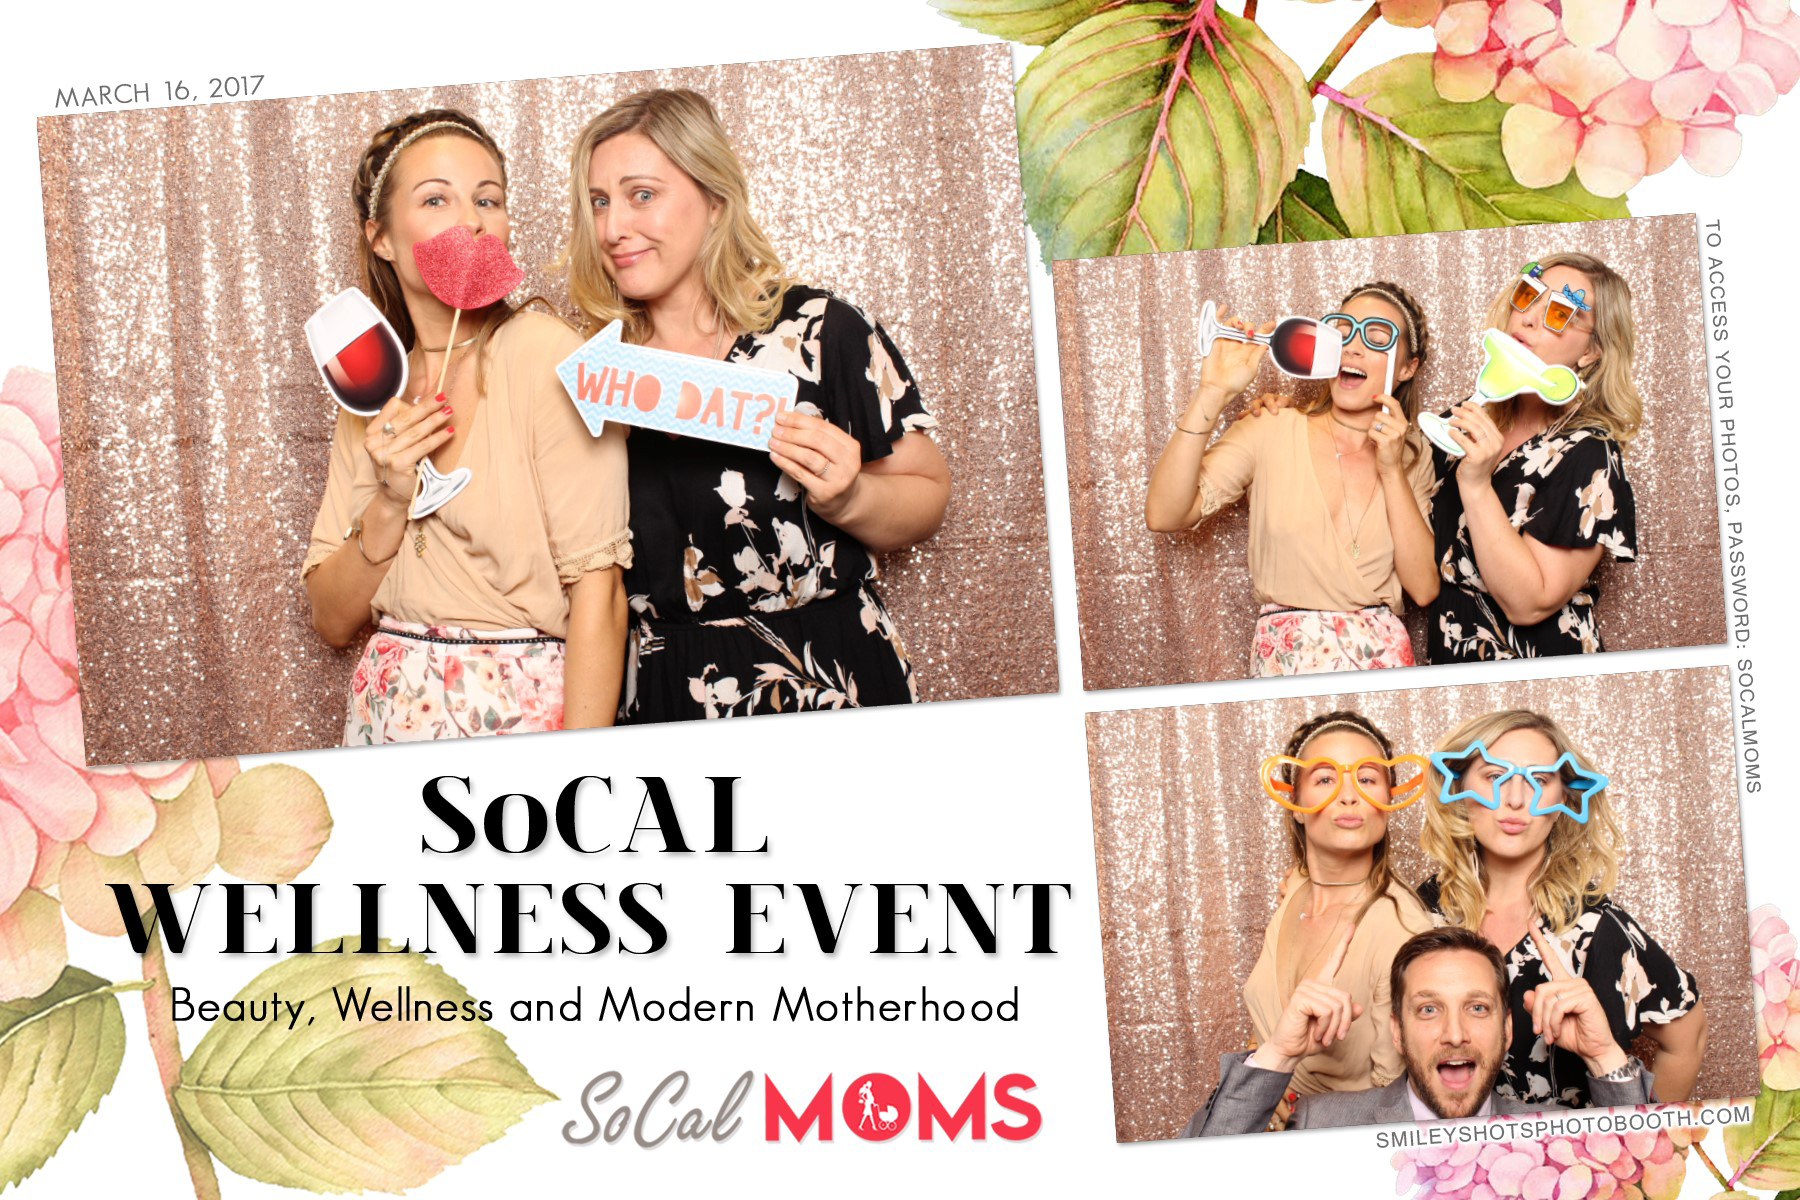 Socal Wellness Event Socal Moms Smiley Shots Photo Booth Photobooth (48).png